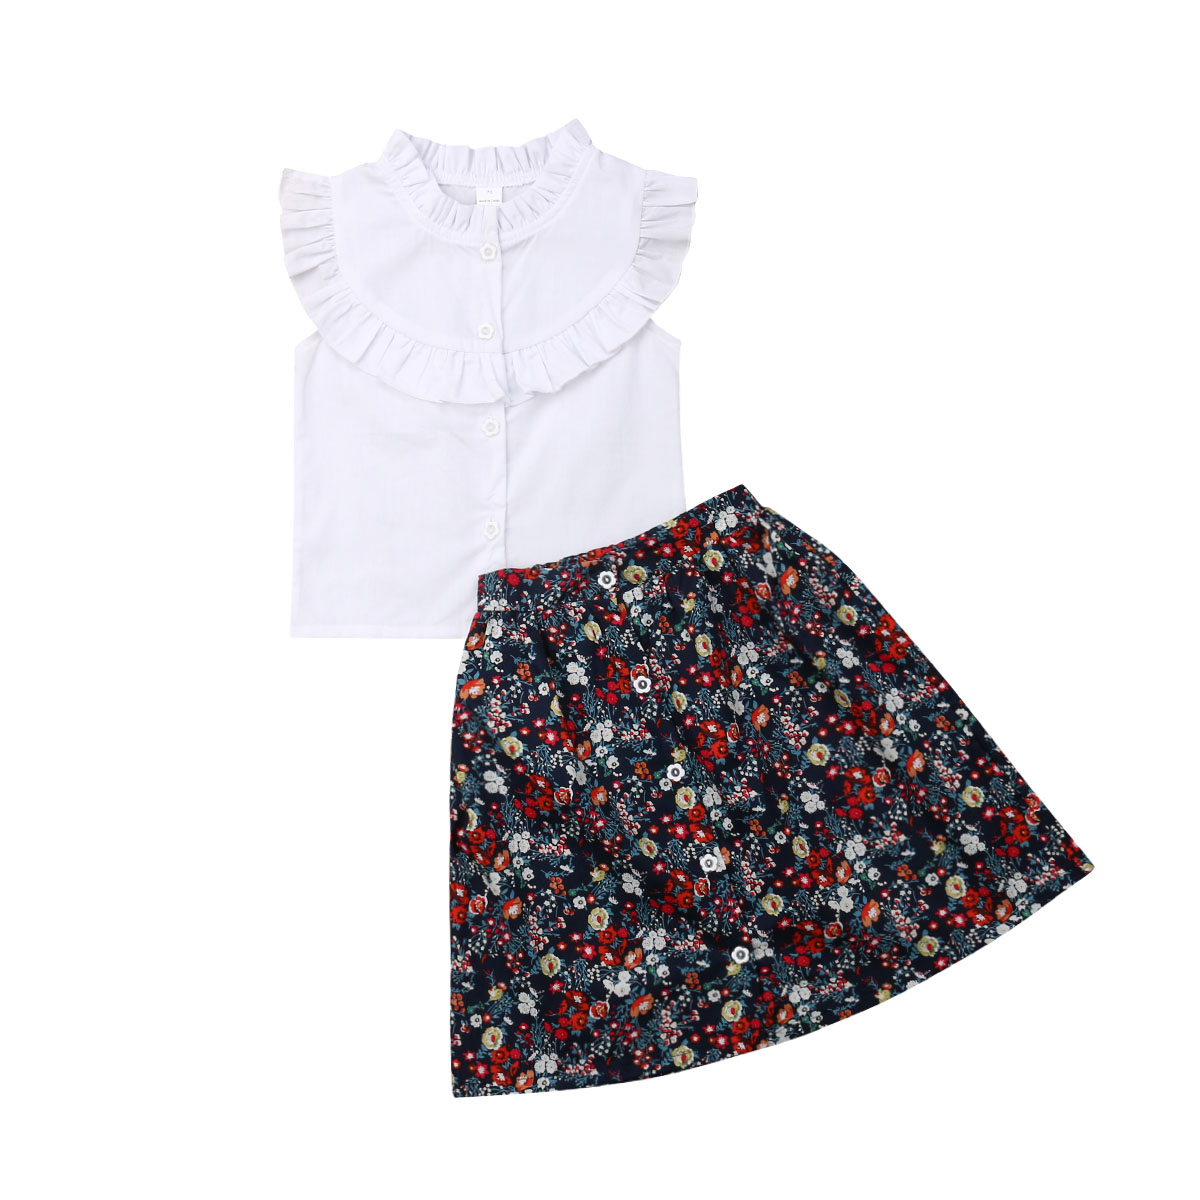 And Great Variety Of Designs And C Full Range Of Specifications And Sizes The Cheapest Price 2019 Newest Style Children Kids Baby Fashion Girl Summer Ruffle Tops T-shirt Floral Skirt Outfits Clothes Set Size 2-7years Famous For High Quality Raw Materials